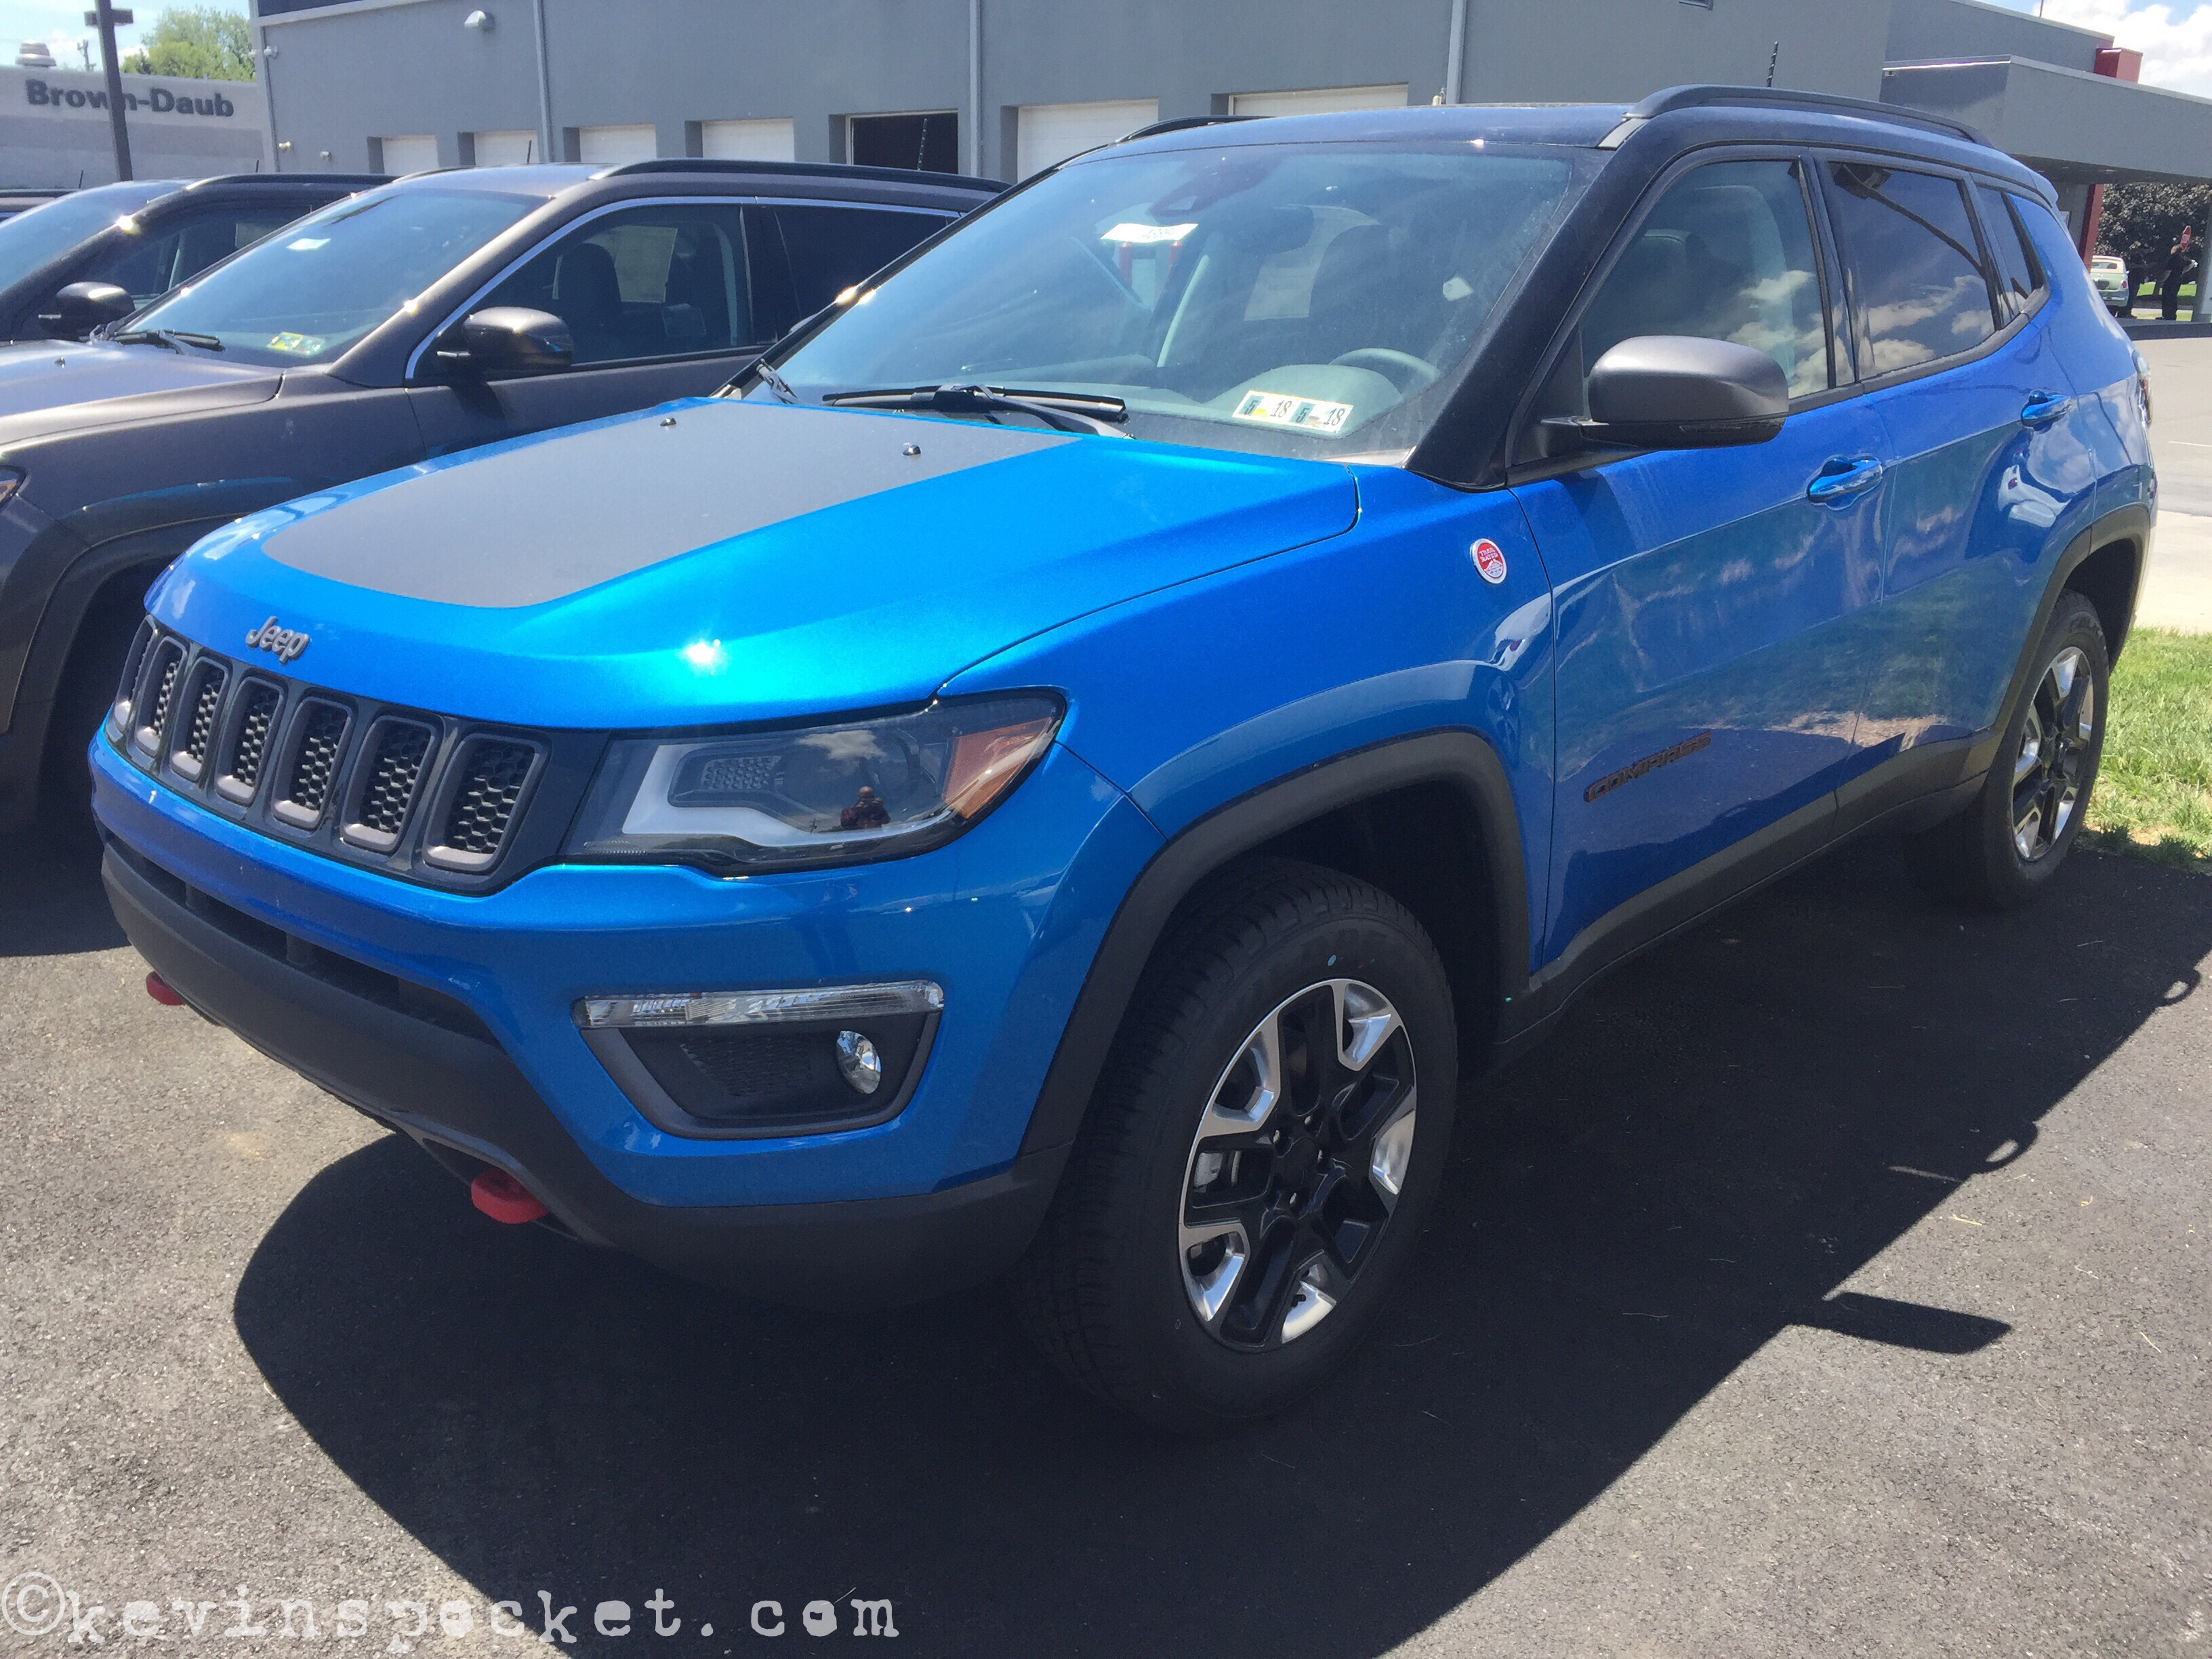 2014 Jeep Wrangler Unlimited Rubicon >> Laser Blue Compass Trailhawk spotted – kevinspocket